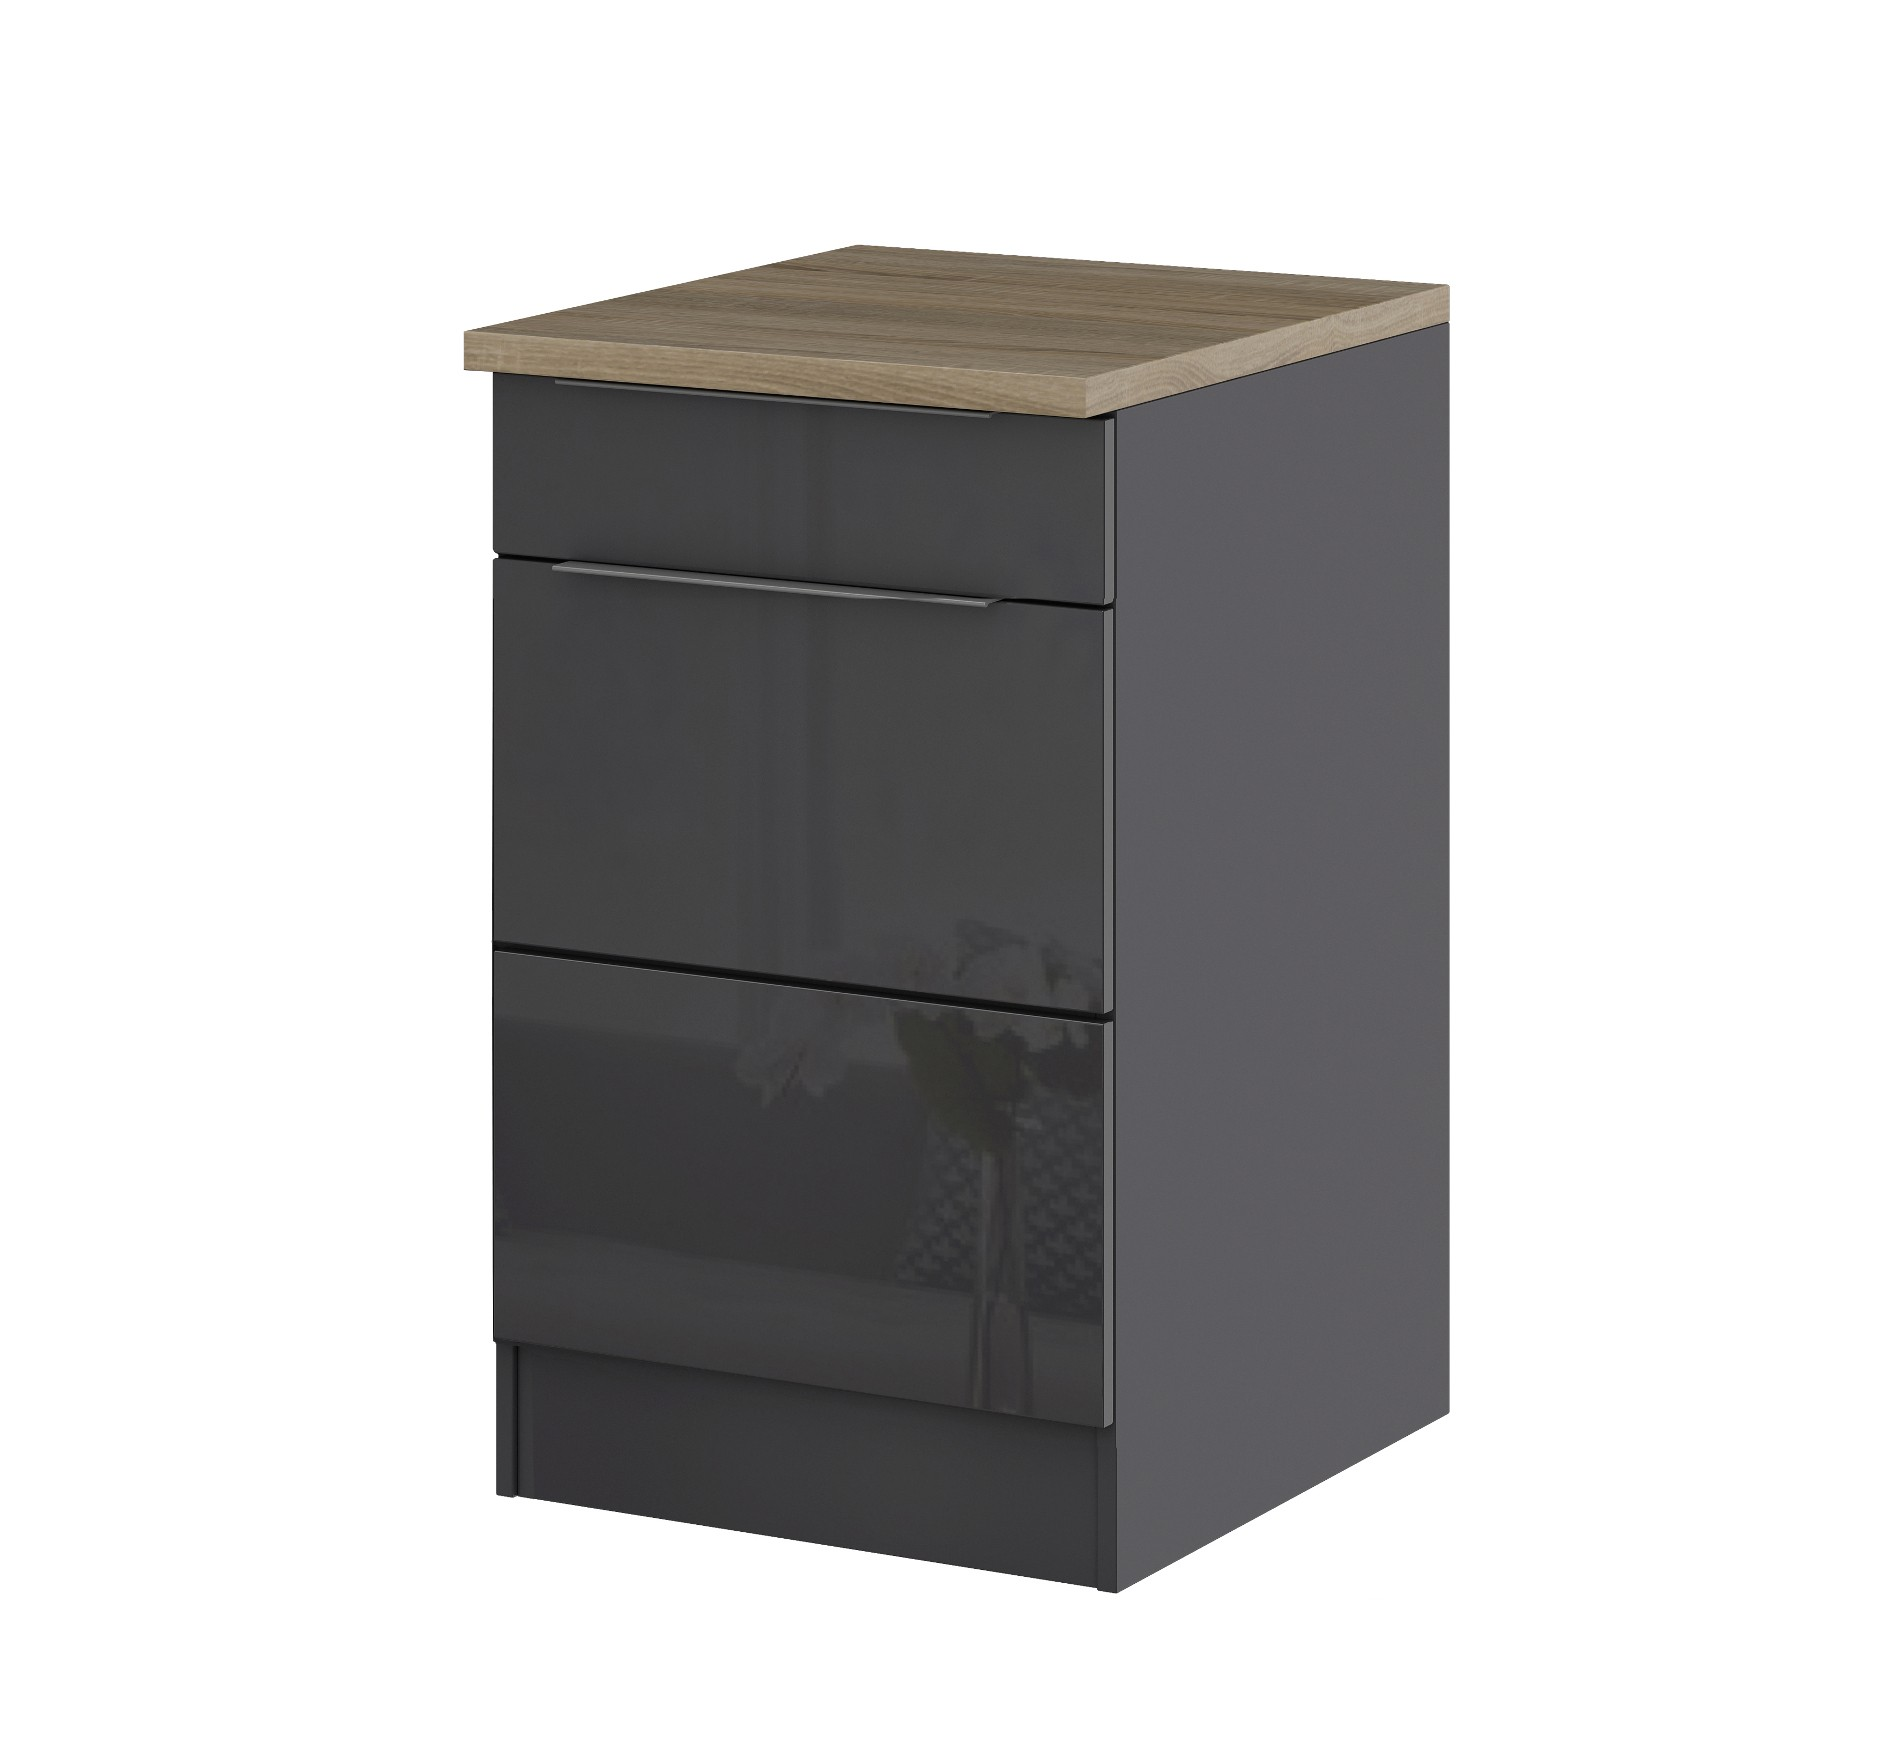 k chen unterschrank hamburg 1 t rig 50 cm breit. Black Bedroom Furniture Sets. Home Design Ideas